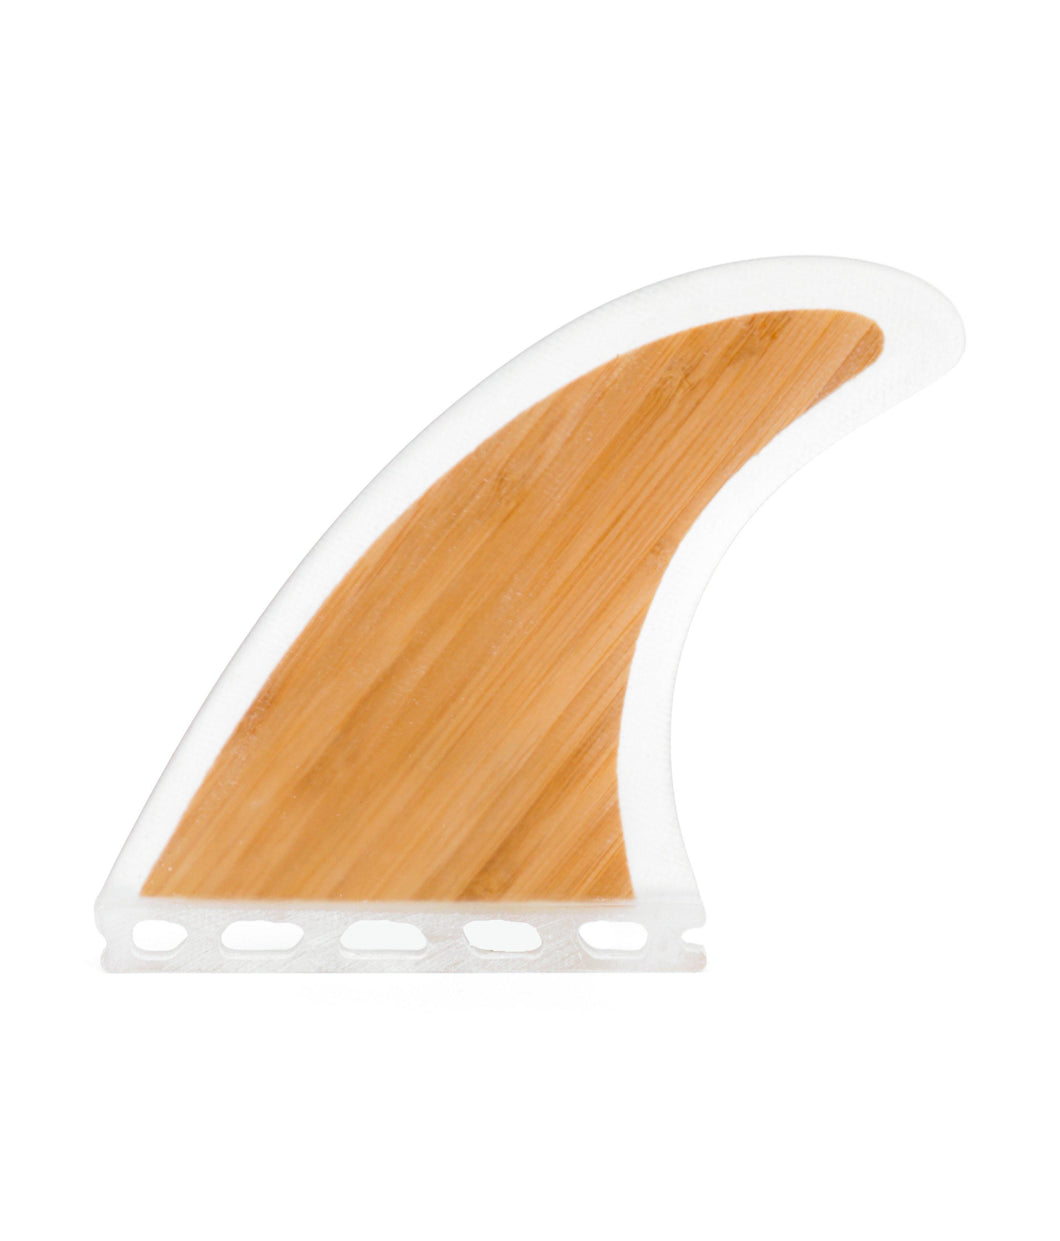 Future Fins Thruster - Bamboo Fins G5 bamboo 1